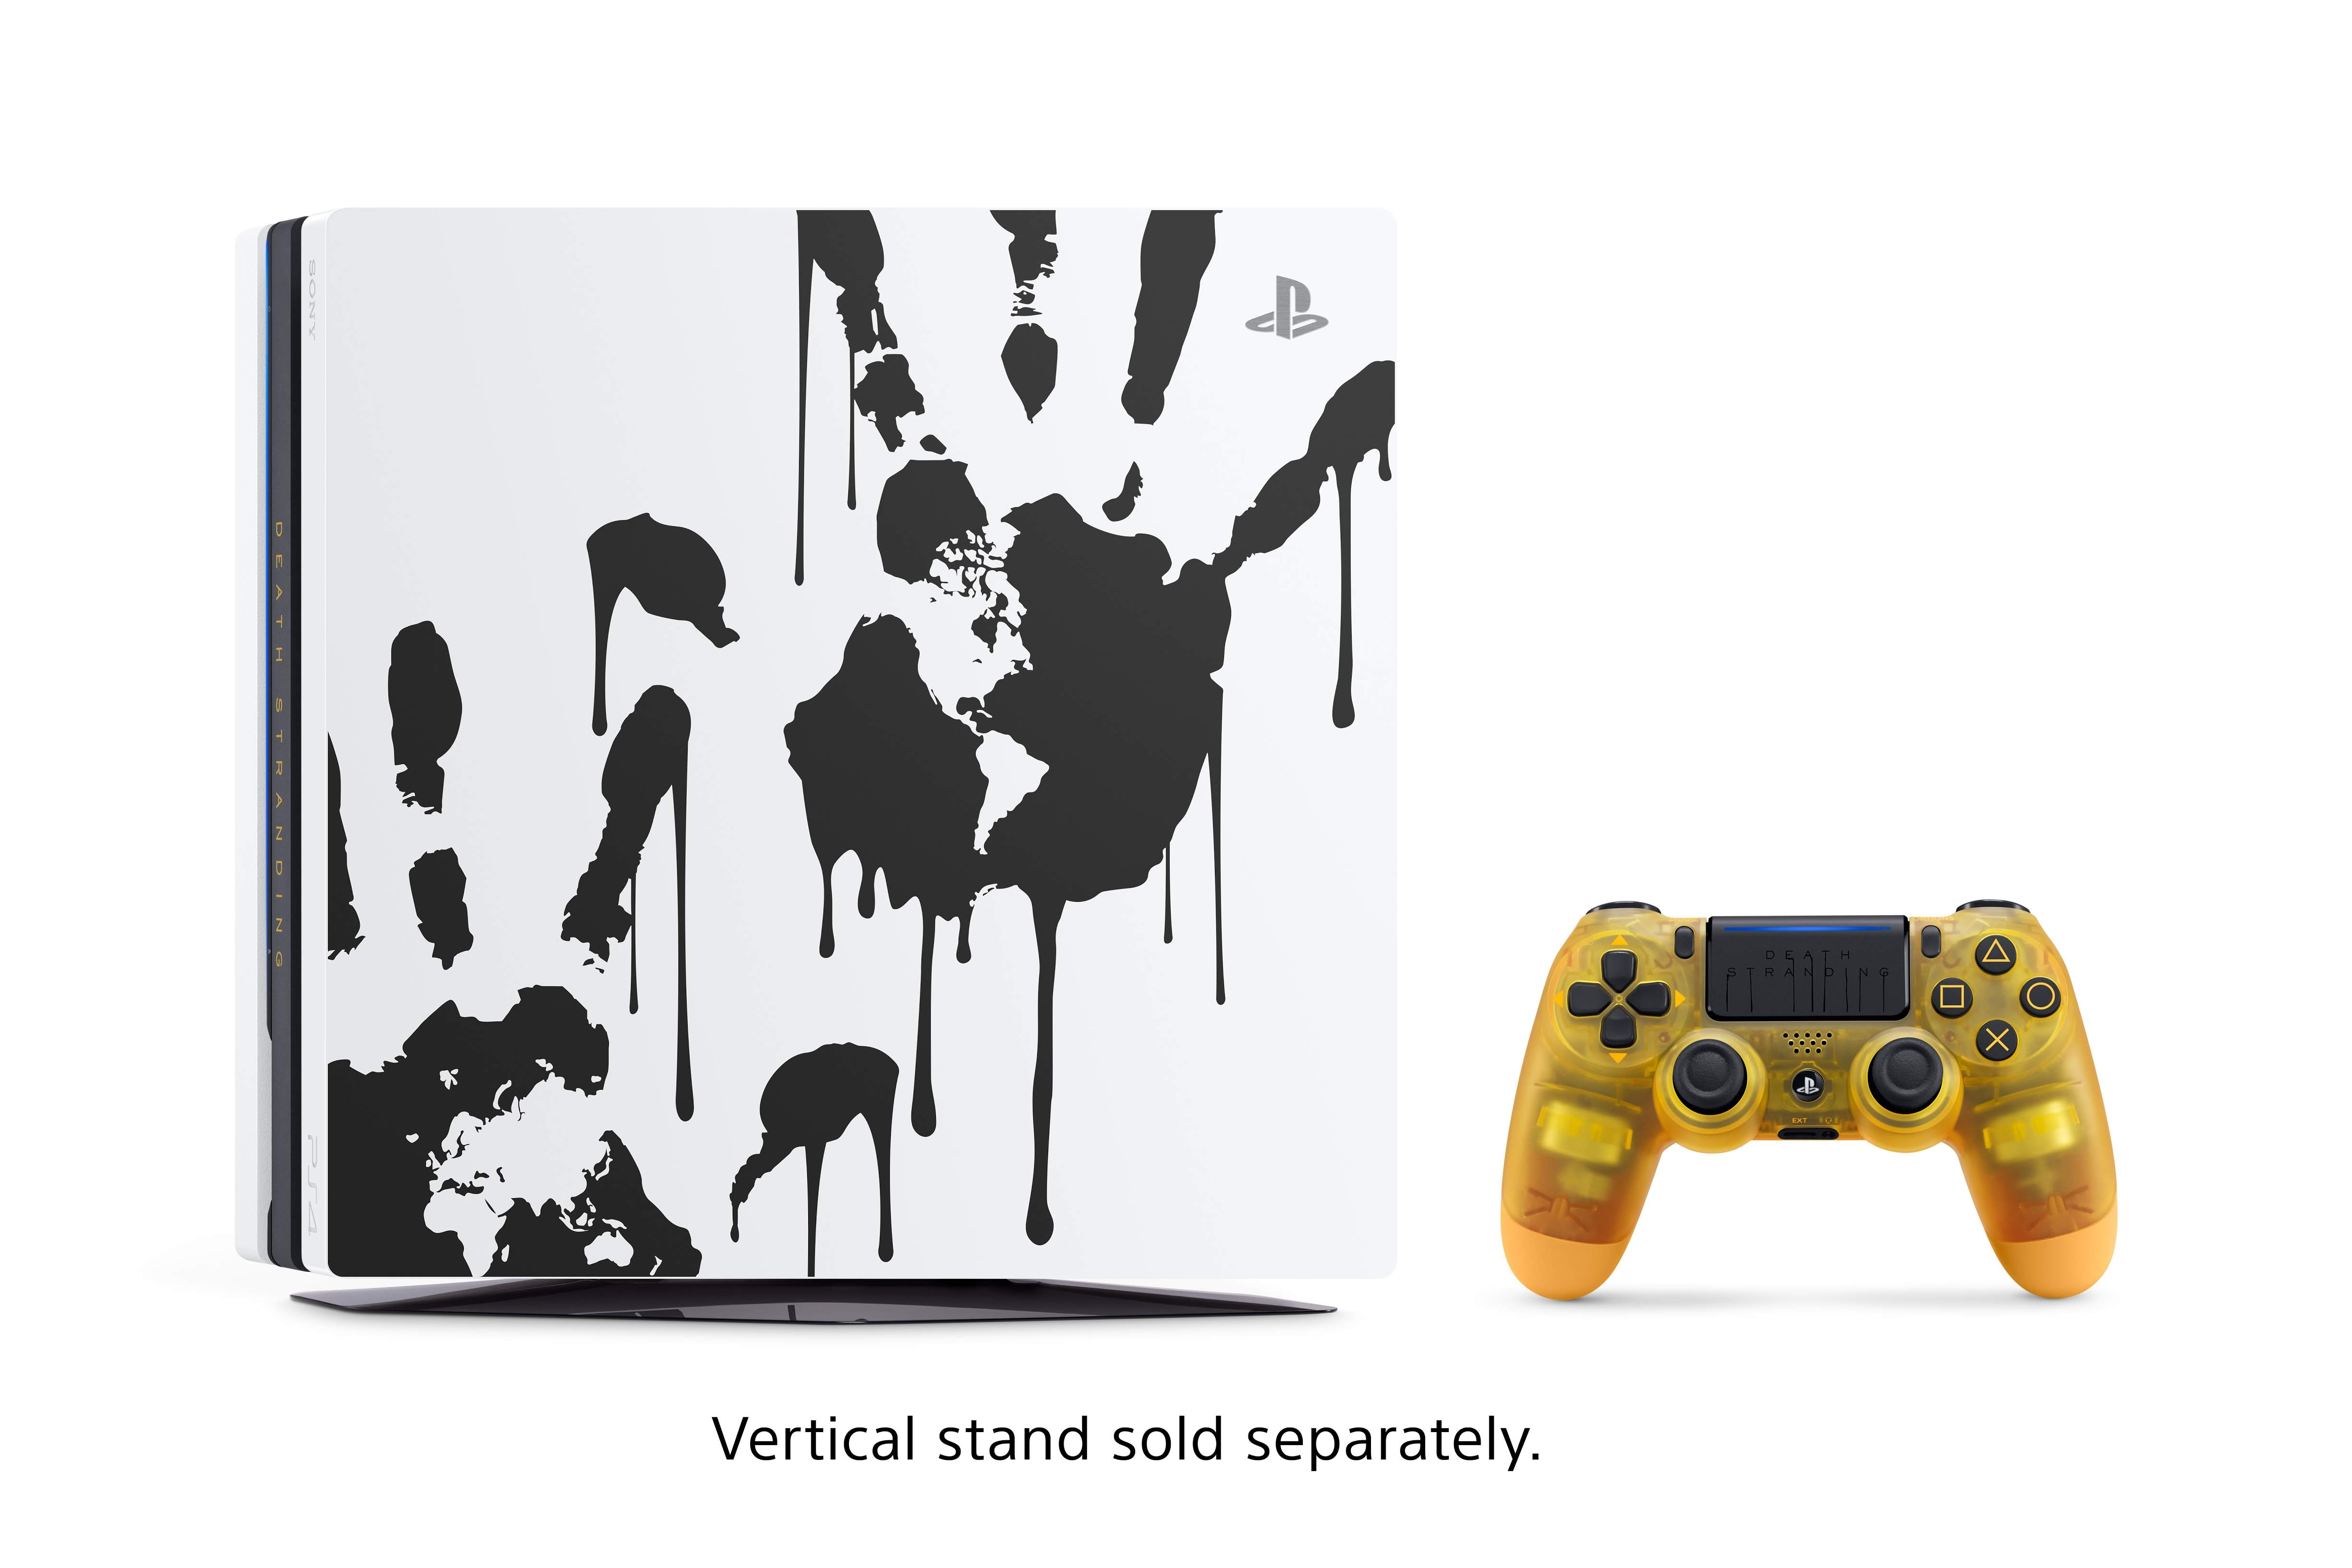 Limited Edition Death Stranding PS4 Pro Bundle Image 3